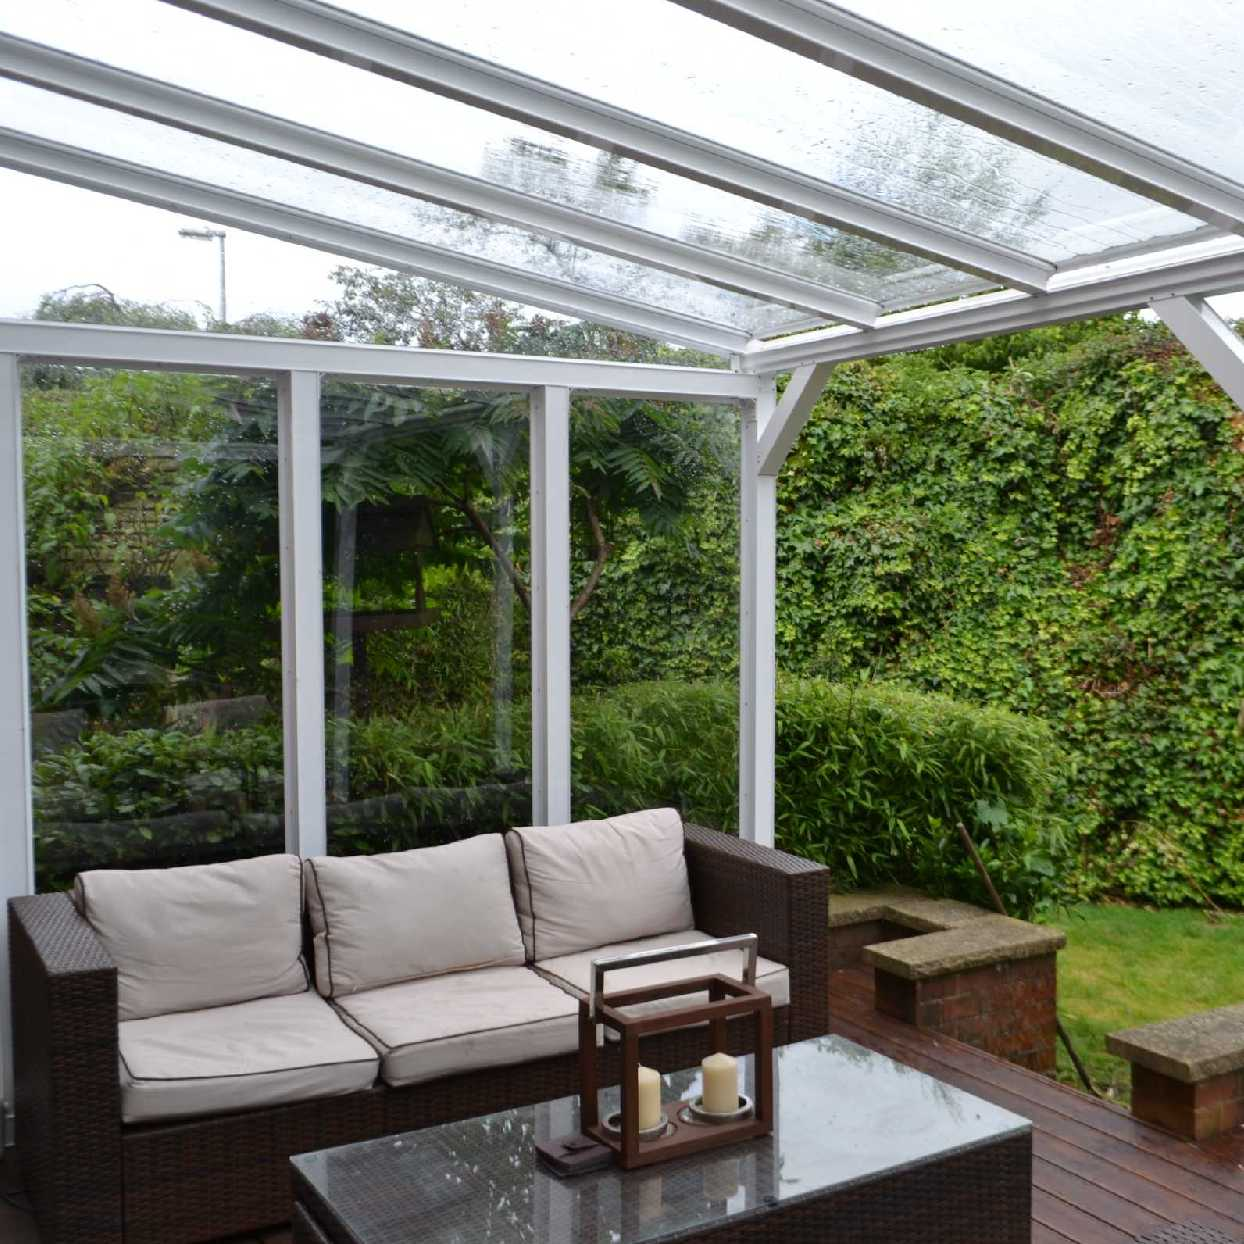 Omega Smart Lean-To Canopy with 6mm Glass Clear Plate Polycarbonate Glazing - 4.2m (W) x 4.0m (P), (3) Supporting Posts